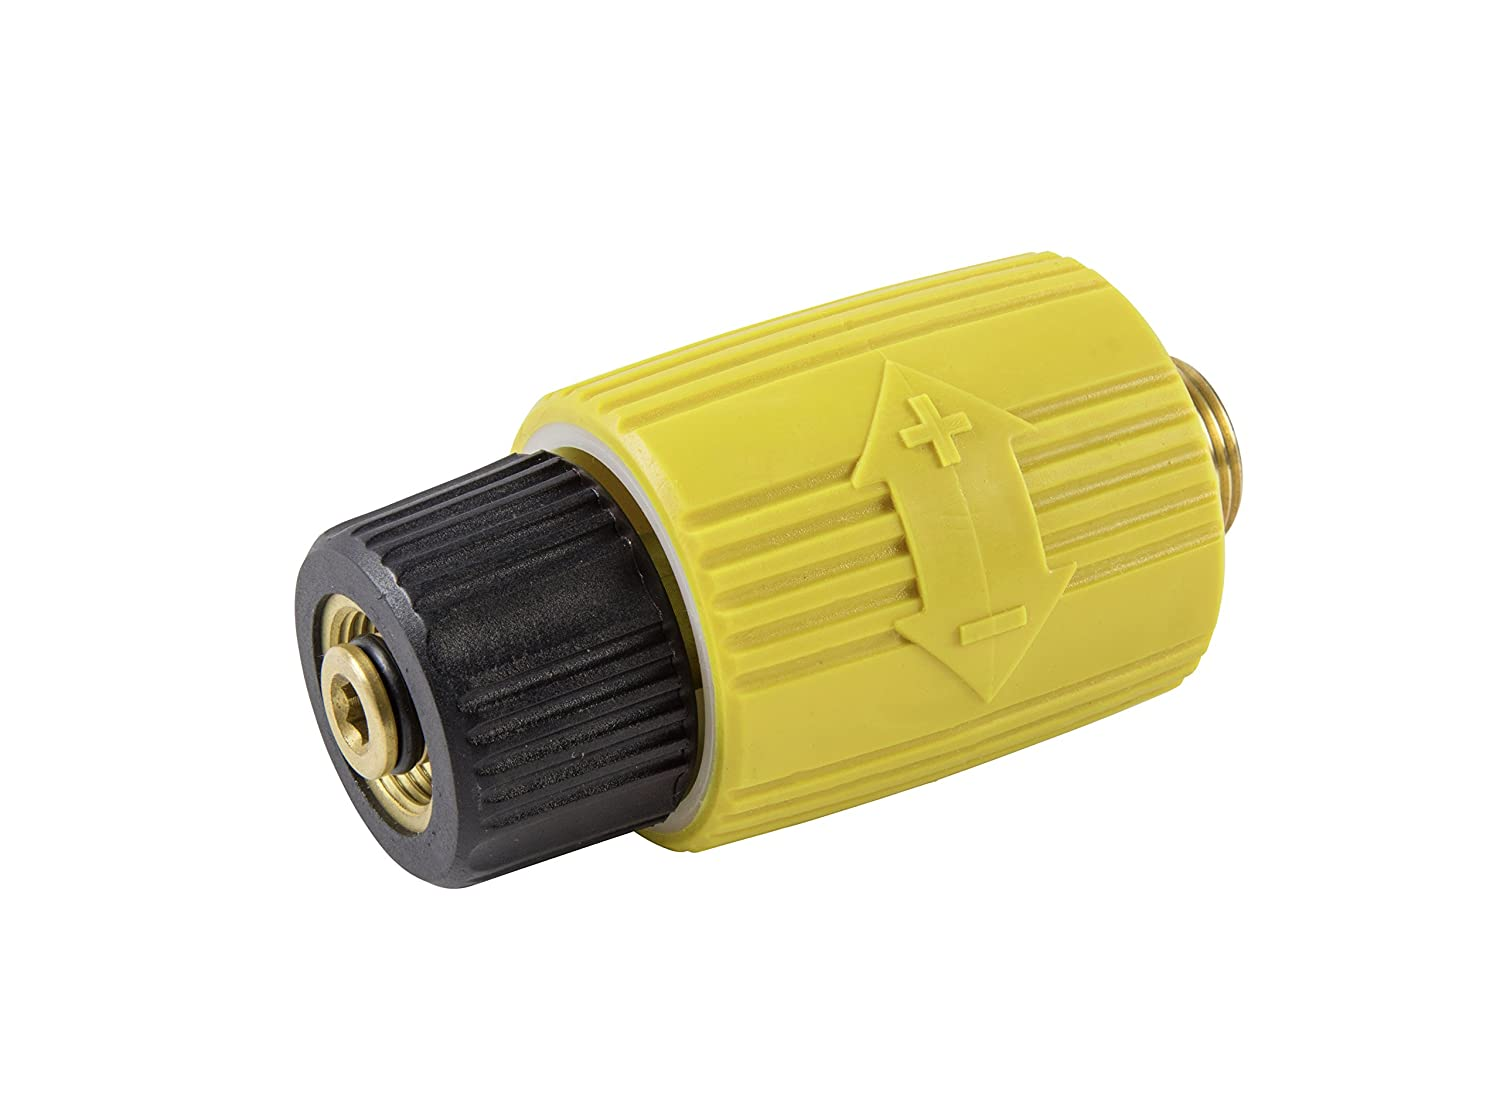 Karcher Pressure & Flow Control Adjustable Nozzle for Gas Pressure Washers, 4000 PSI Rating